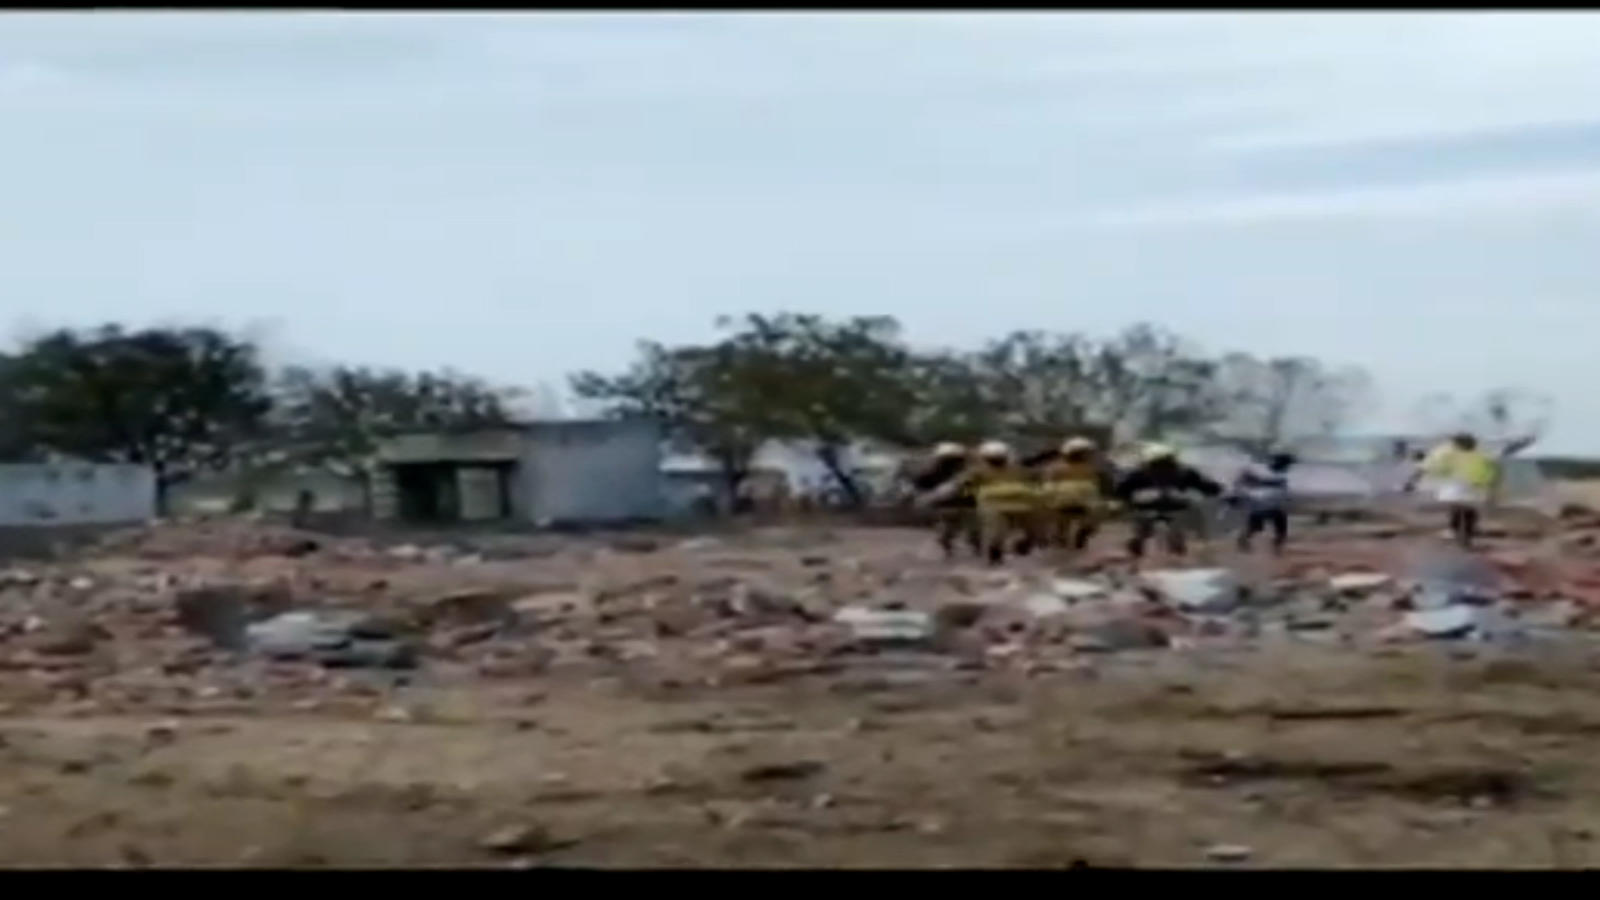 Tamil Nadu: 11 dead and 22 injured in fire accident at a fireworks factory in Virudhunagar